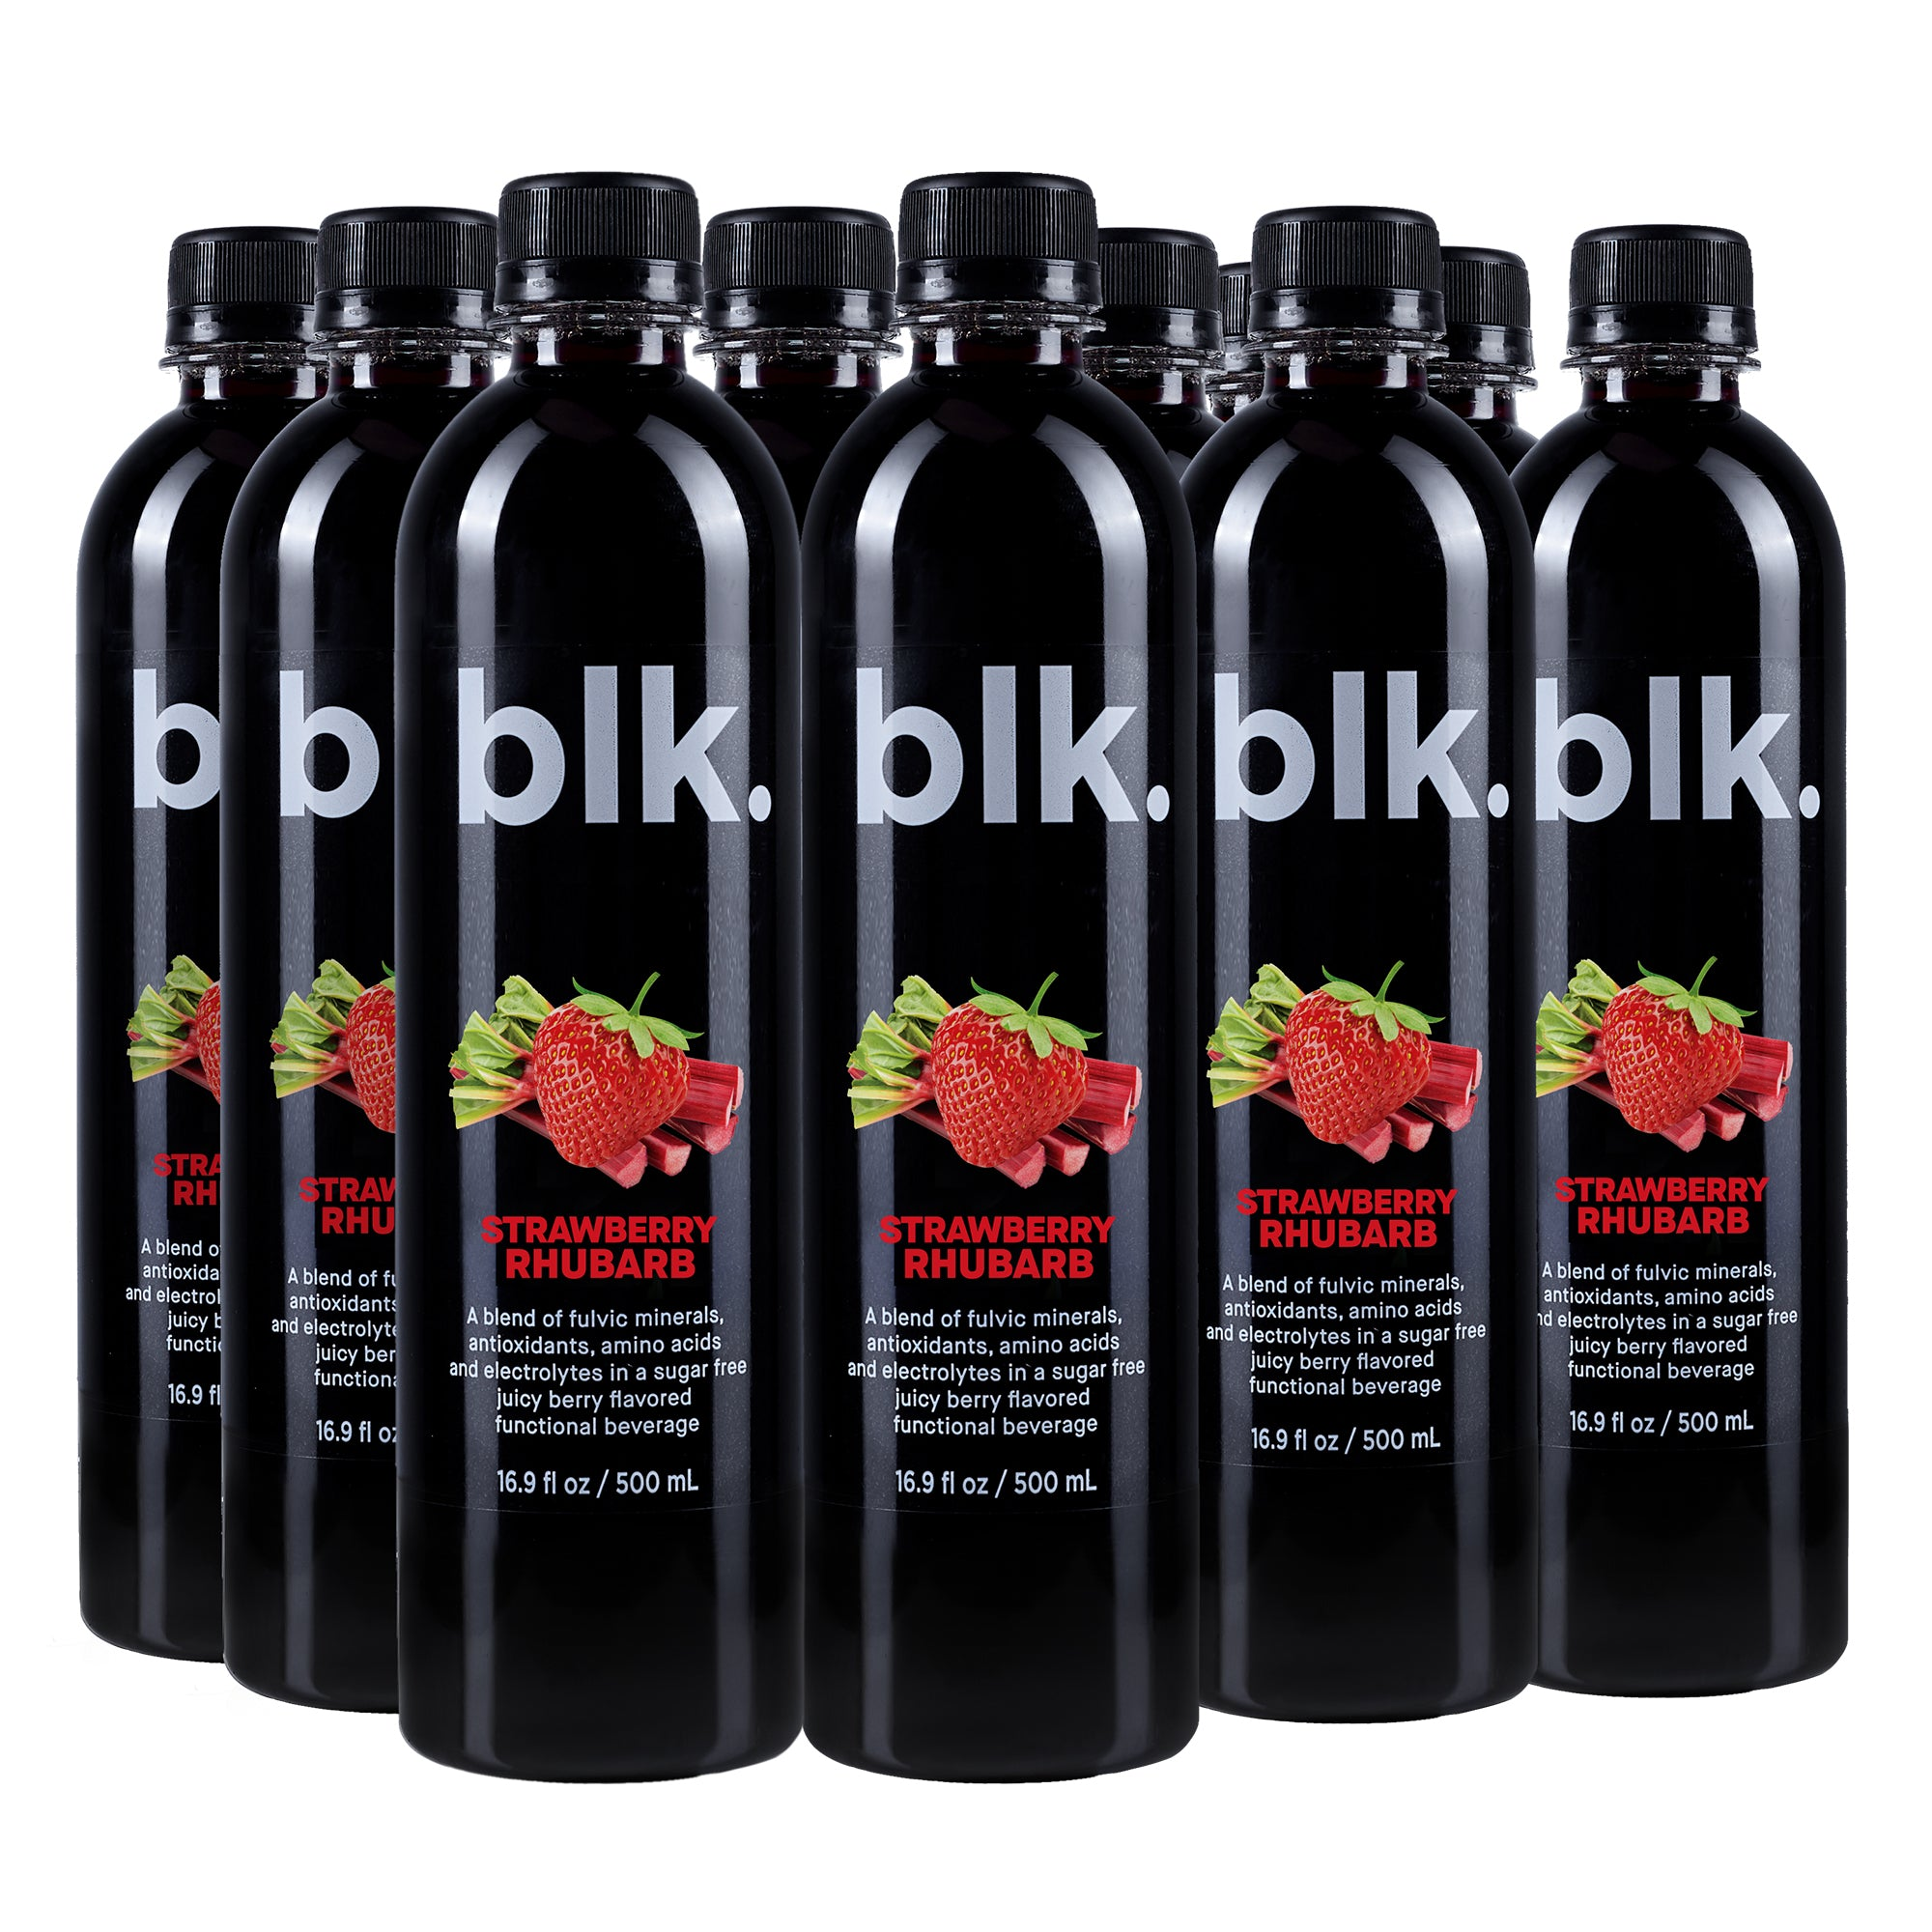 blk. Strawberry Rhubarb 12 Pack